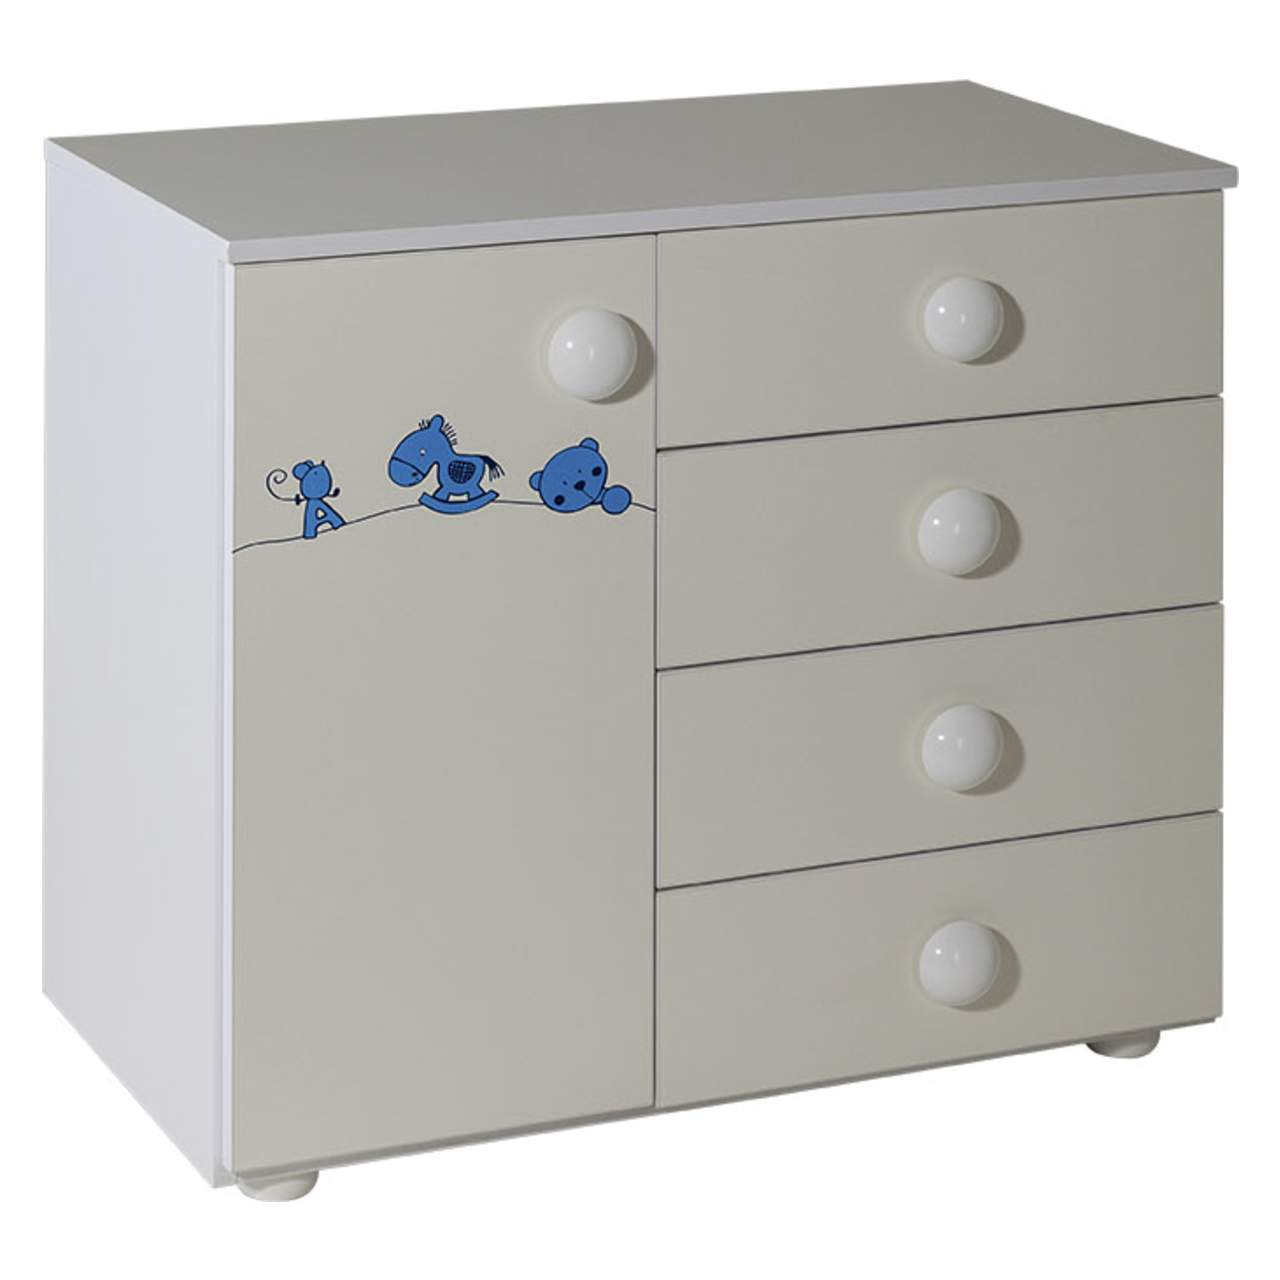 Childrens Cabinet With 4 Drawers Door White For Room Maja Blue 060 Picture